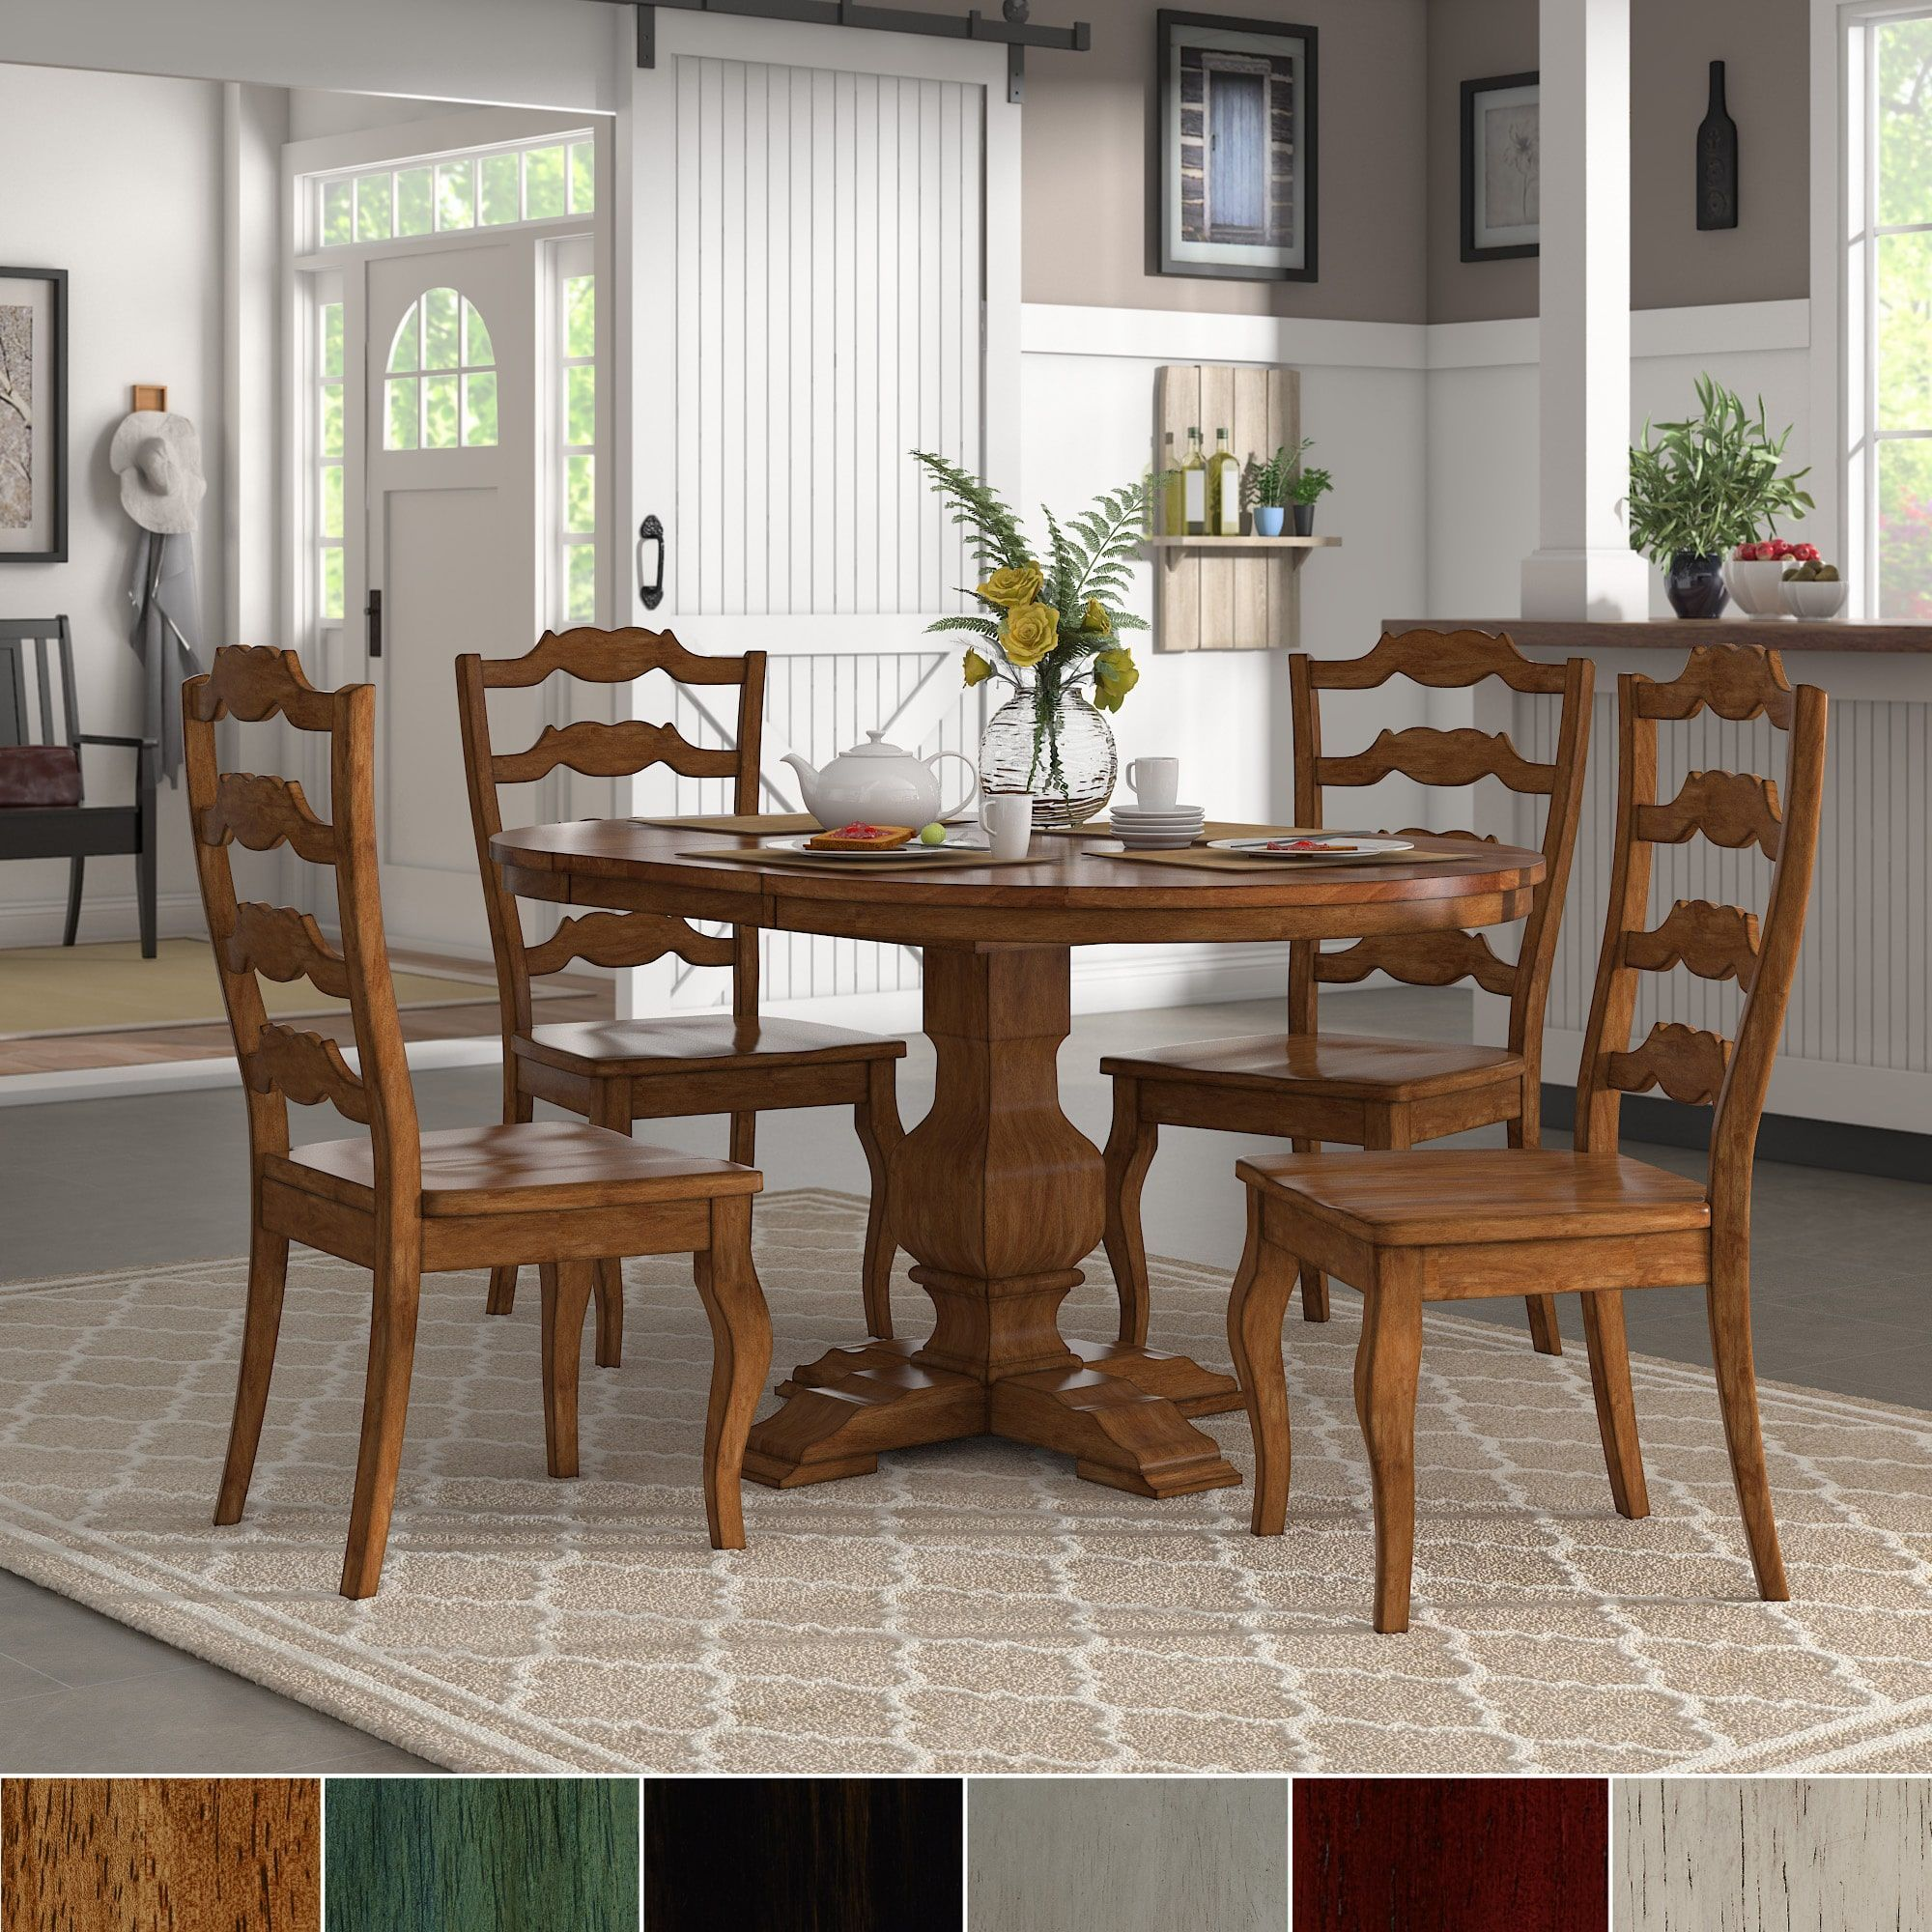 Eleanor Oak Extending Oval Wood Table French Back 5 Piece Dining Set By Inspire Q Classic Green Dining Room Black Dining Room Furniture Dining Room Chairs